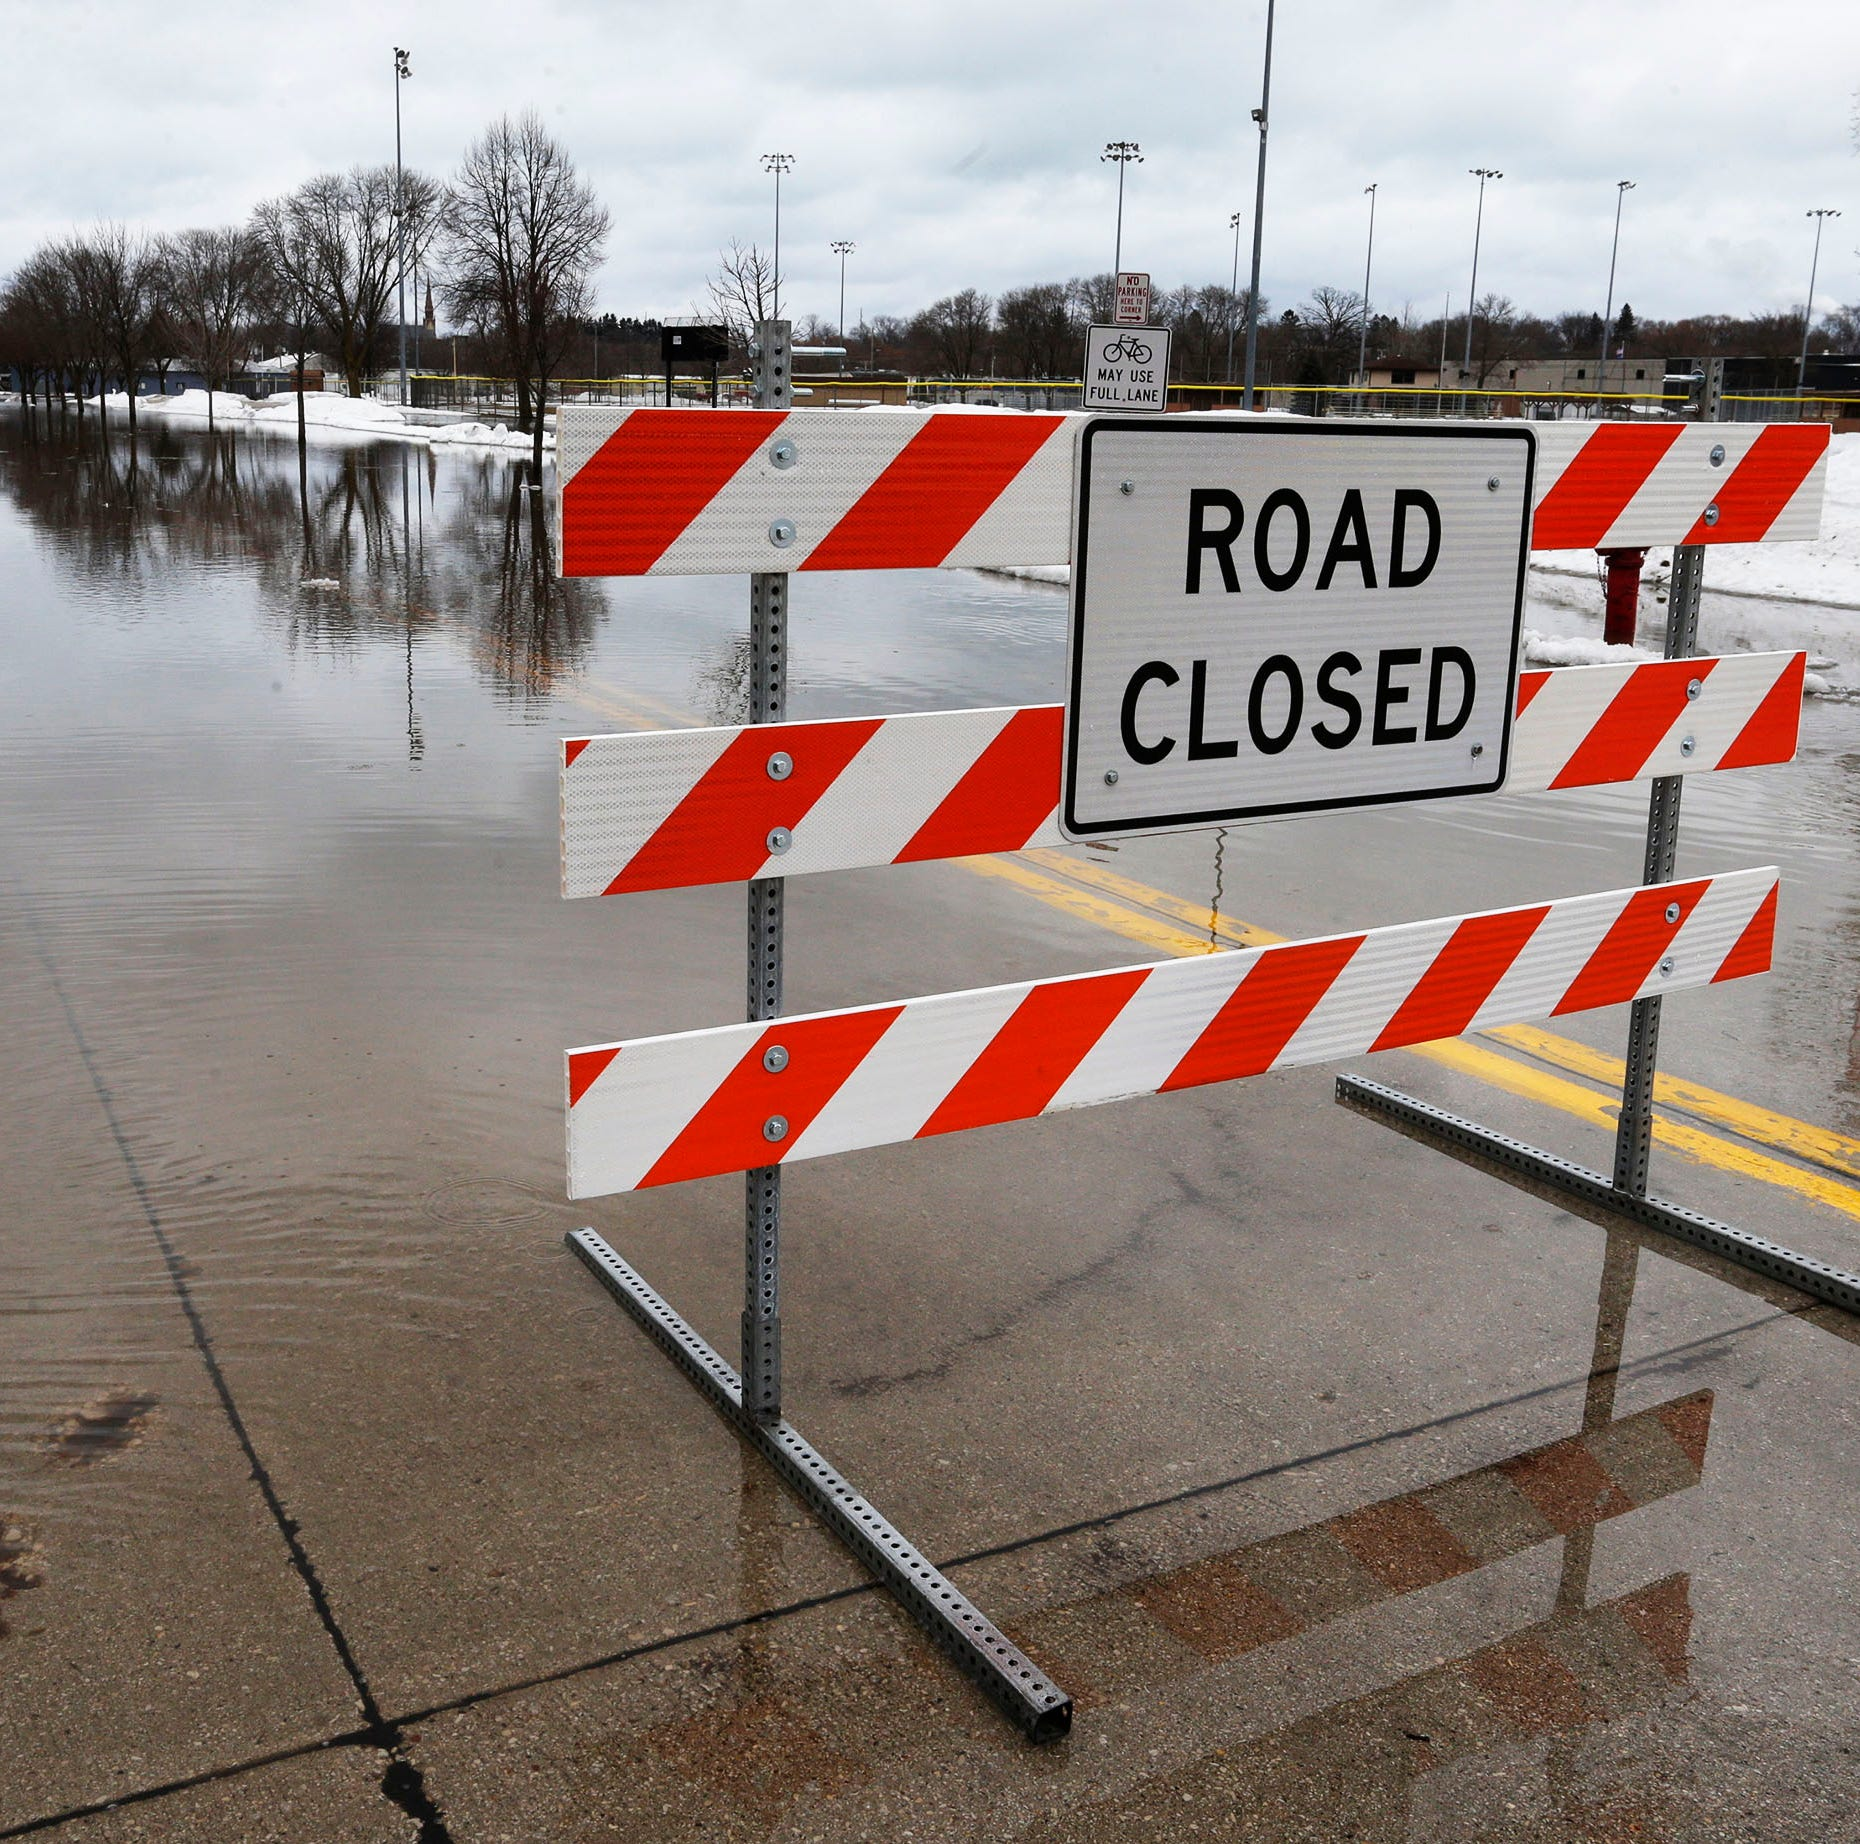 At least 20 Sheboygan County roads have been closed due to flooding, sheriff's office says